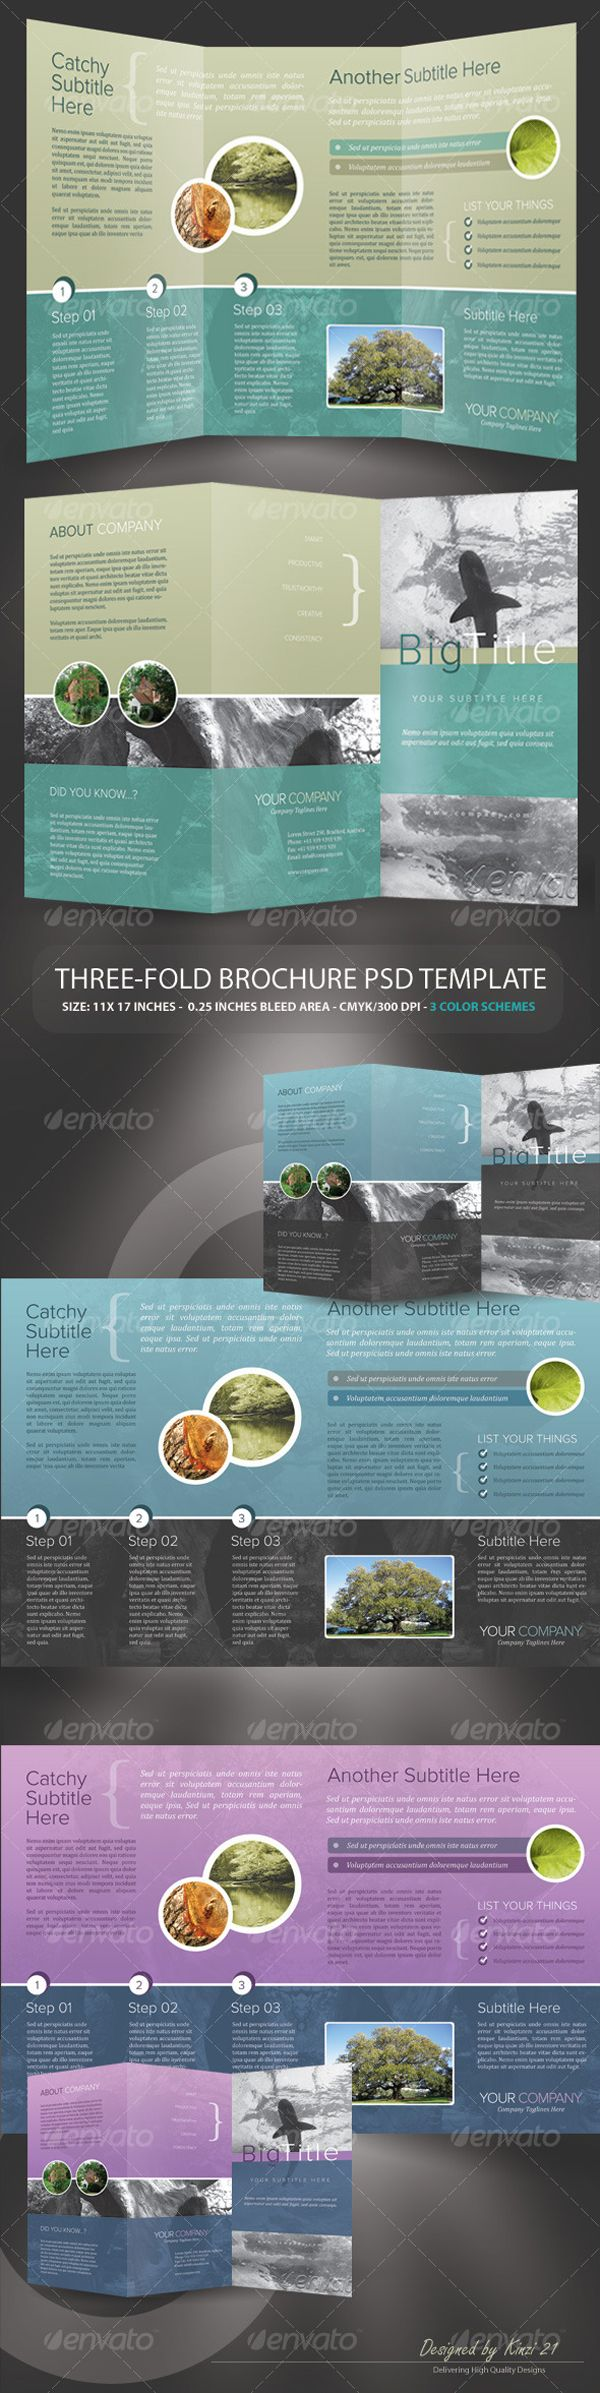 32 best Tri fold Brochures images – Free Printable Tri Fold Brochure Template